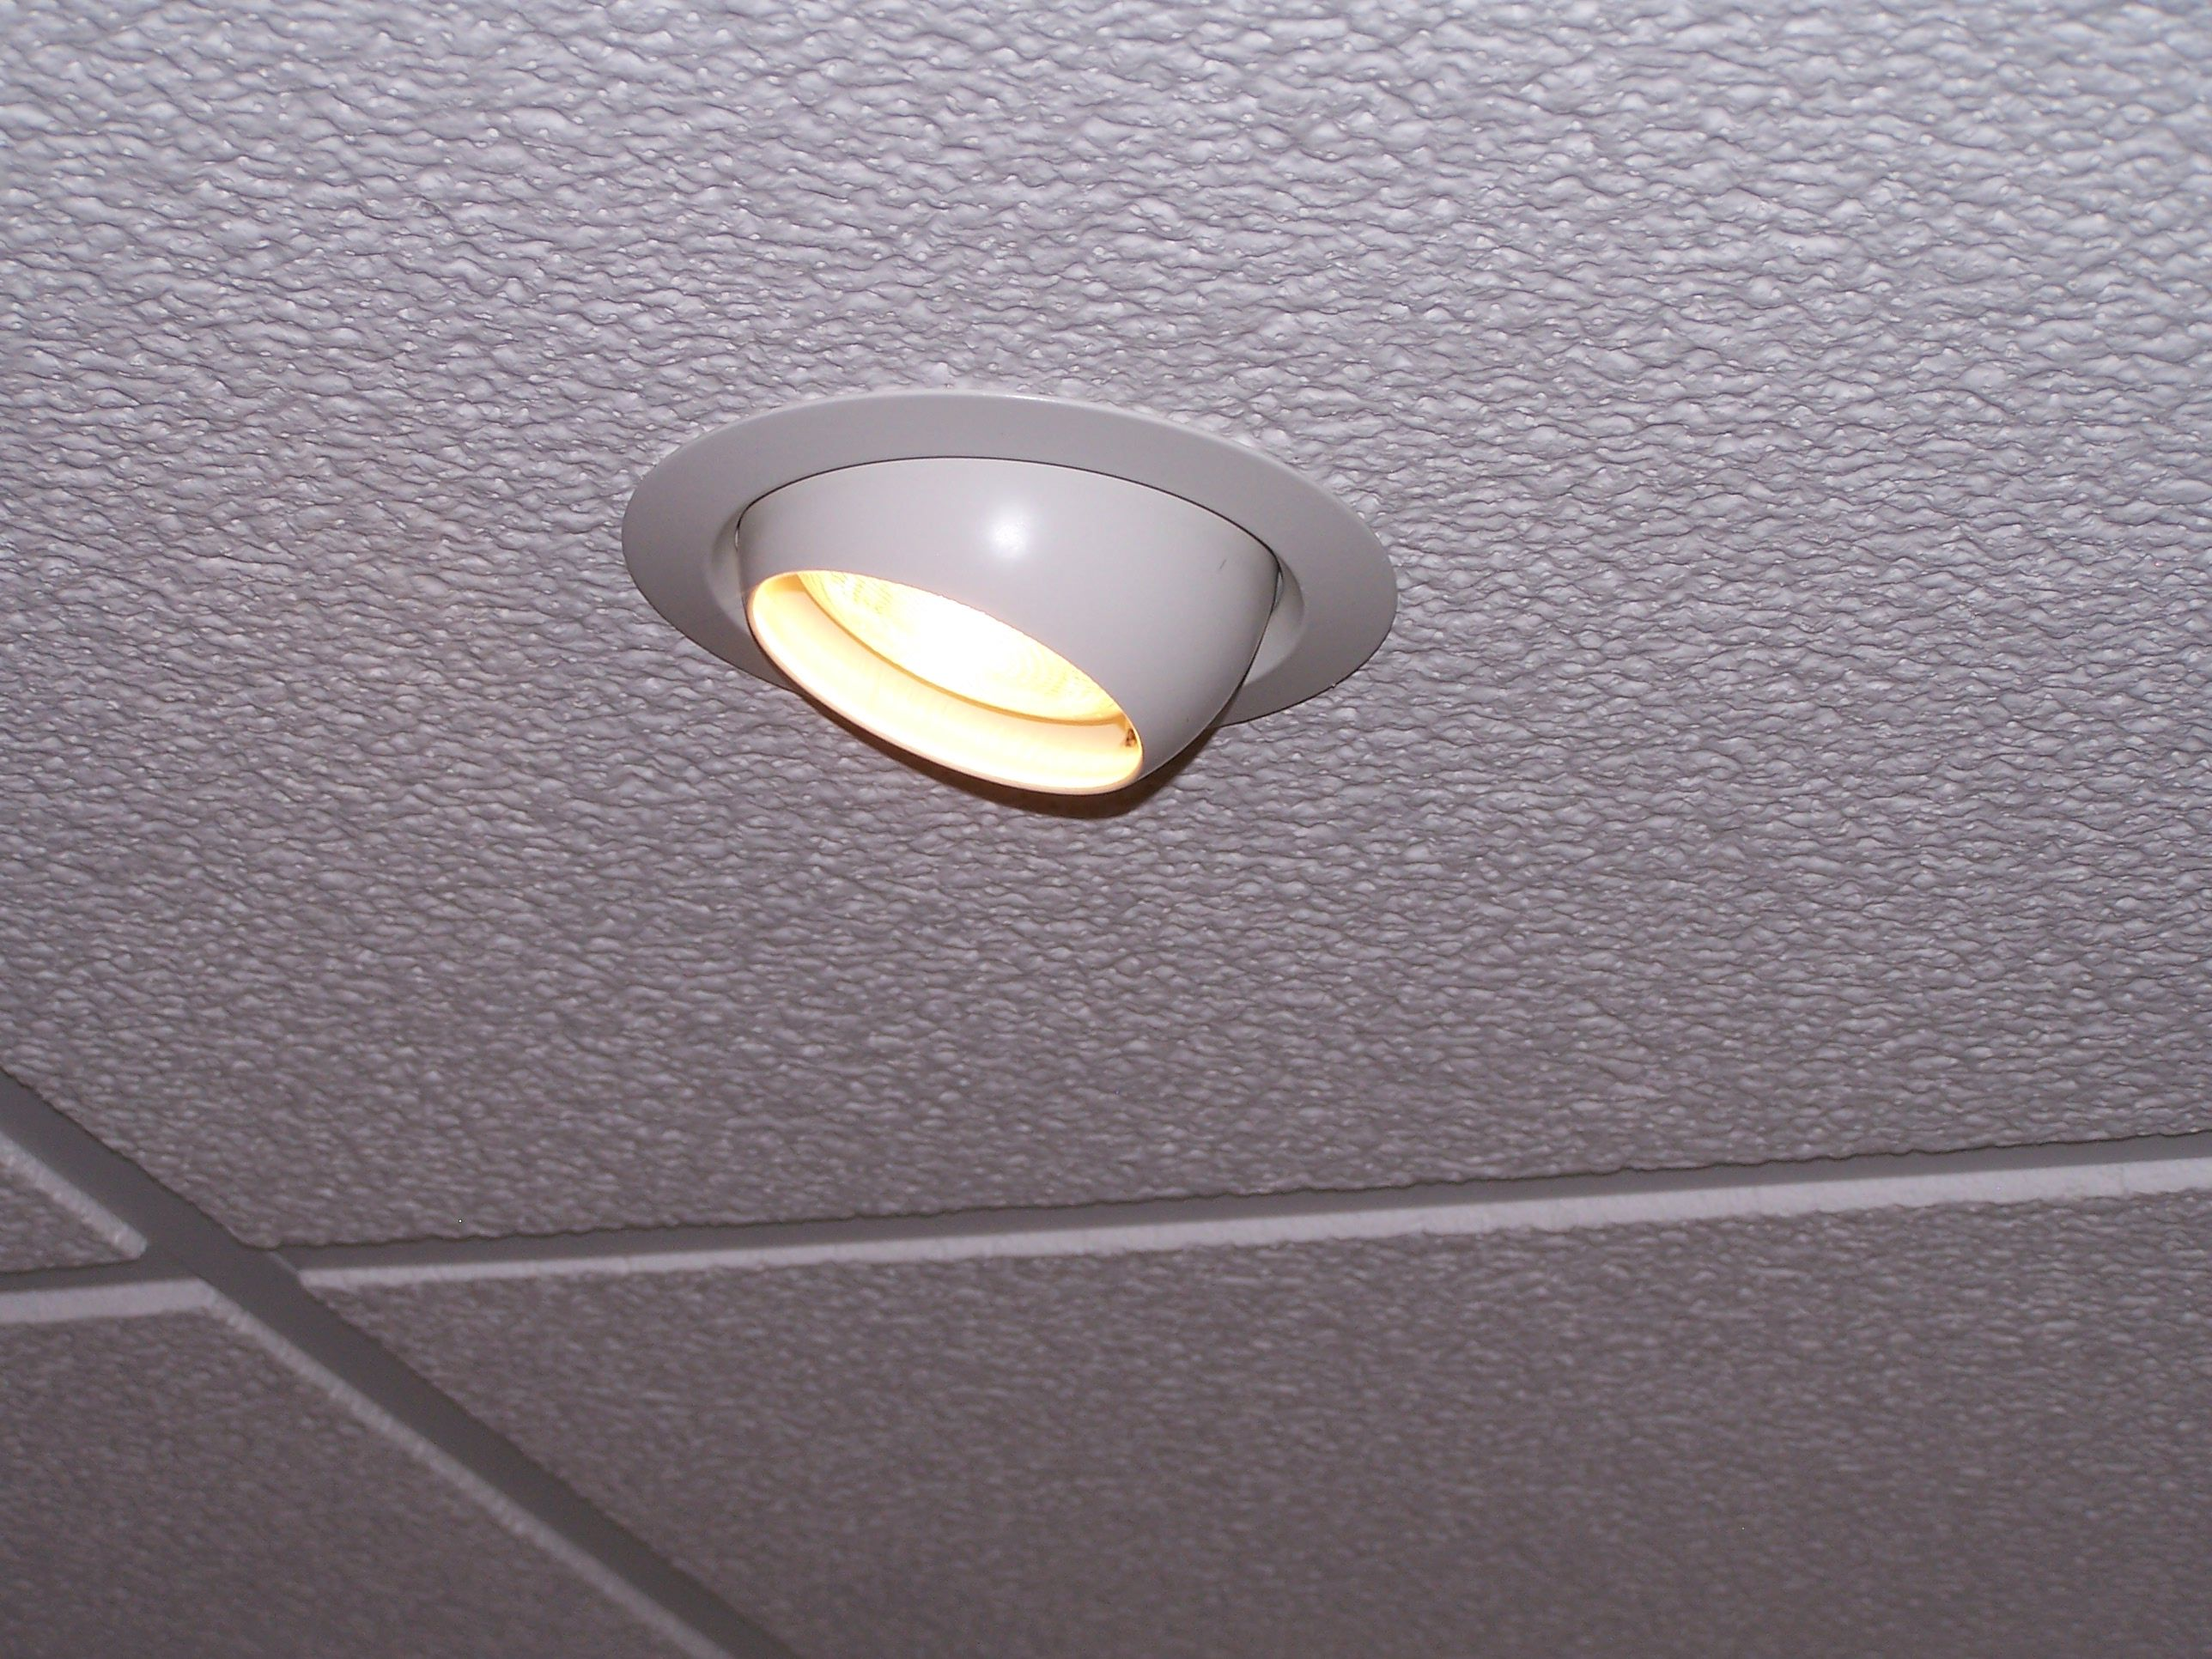 Recessed Lighting Fixtures In Suspended Ceiling Systems